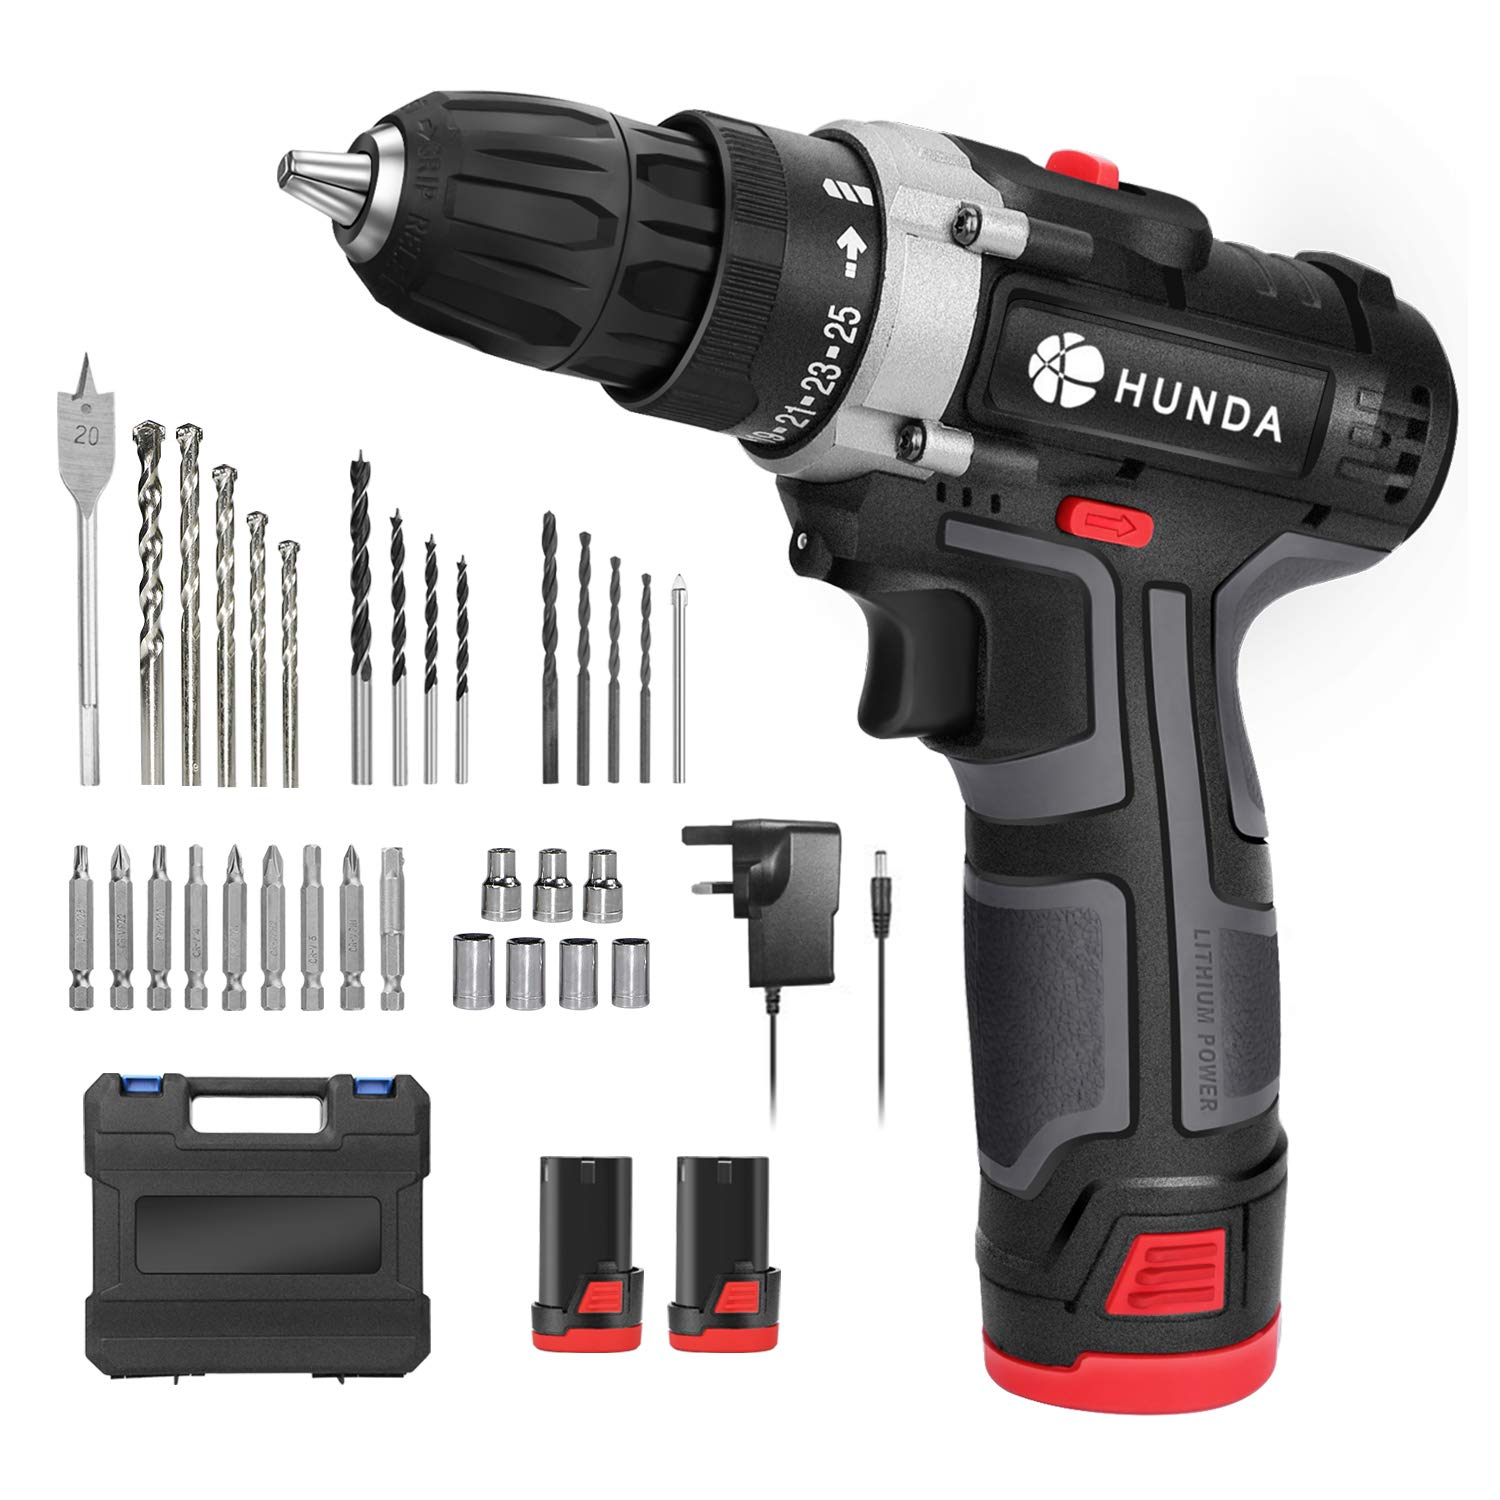 Electric Drill Set, 12.8V Cordless Drill Driver with 2Pcs 1300Ah Batteries, Household Tool Kit Portable Screwdriver – 2 Adjustable Speeds, 25 1 Torque Settings, LED Light, 31 Pcs Accessory